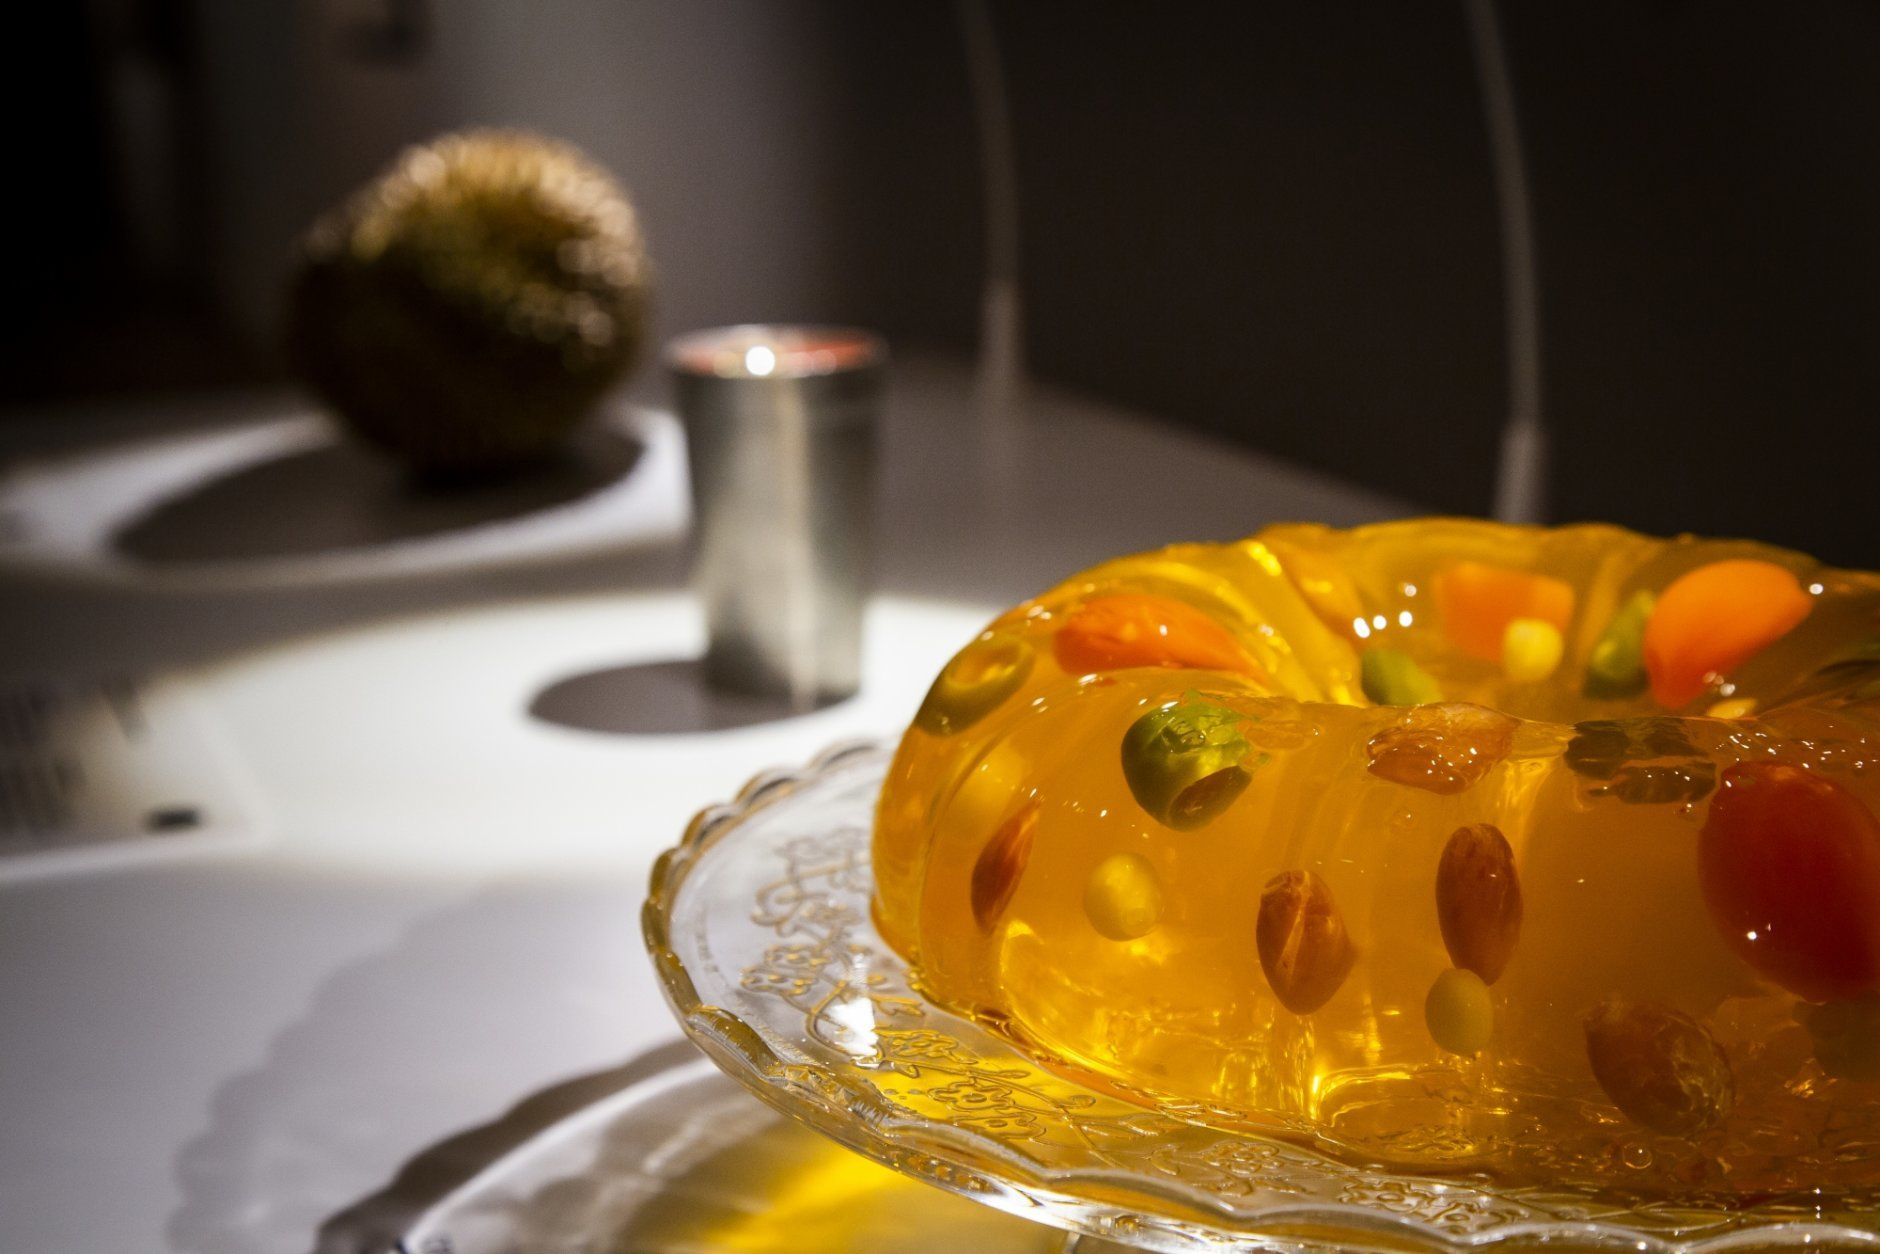 In this photo taken on Sept. 22, 2018 Jello-O-Salad on display at the Disgusting Food Museum, in Malmo,  Sweden. This comfort food is made with the candy-flavored gelatin Jell-O. Considered traditional American in the 1960s, it was especially popular amongst members of the Mormon Church. The various recipes include ingredients such as tomato soup, mayonnaise, cream cheese, vegetables, sausages, olives or anything else that may look good suspended in the colorful jelly. Dozen of foods likely to provoke extreme disgust in many people _ but considered palatable, even precious delicacies, in their home cultures _ go on display Wednesday, Oct. 31, 2018 as the Disgusting Food Museum makes its world premiere in Malmo, Sweden. (Anja Barte Telin via AP)